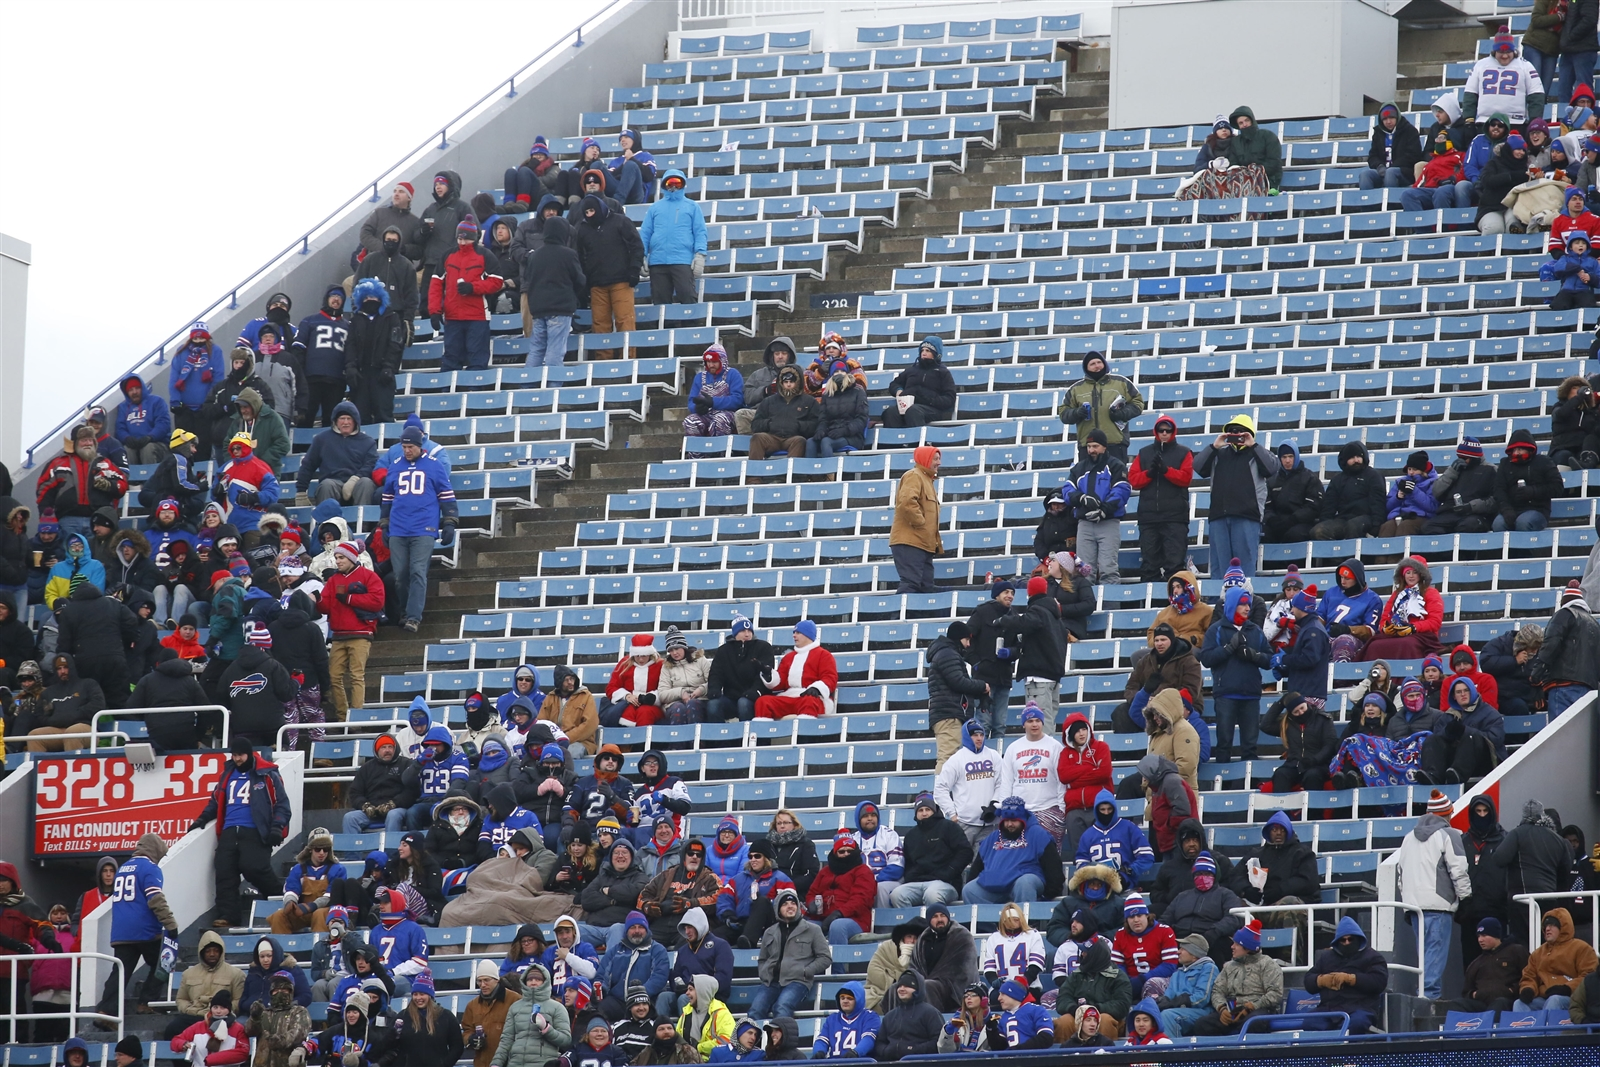 There were many empty seats for Sunday's Bills-Browns game. (Harry Scull Jr./Buffalo News)